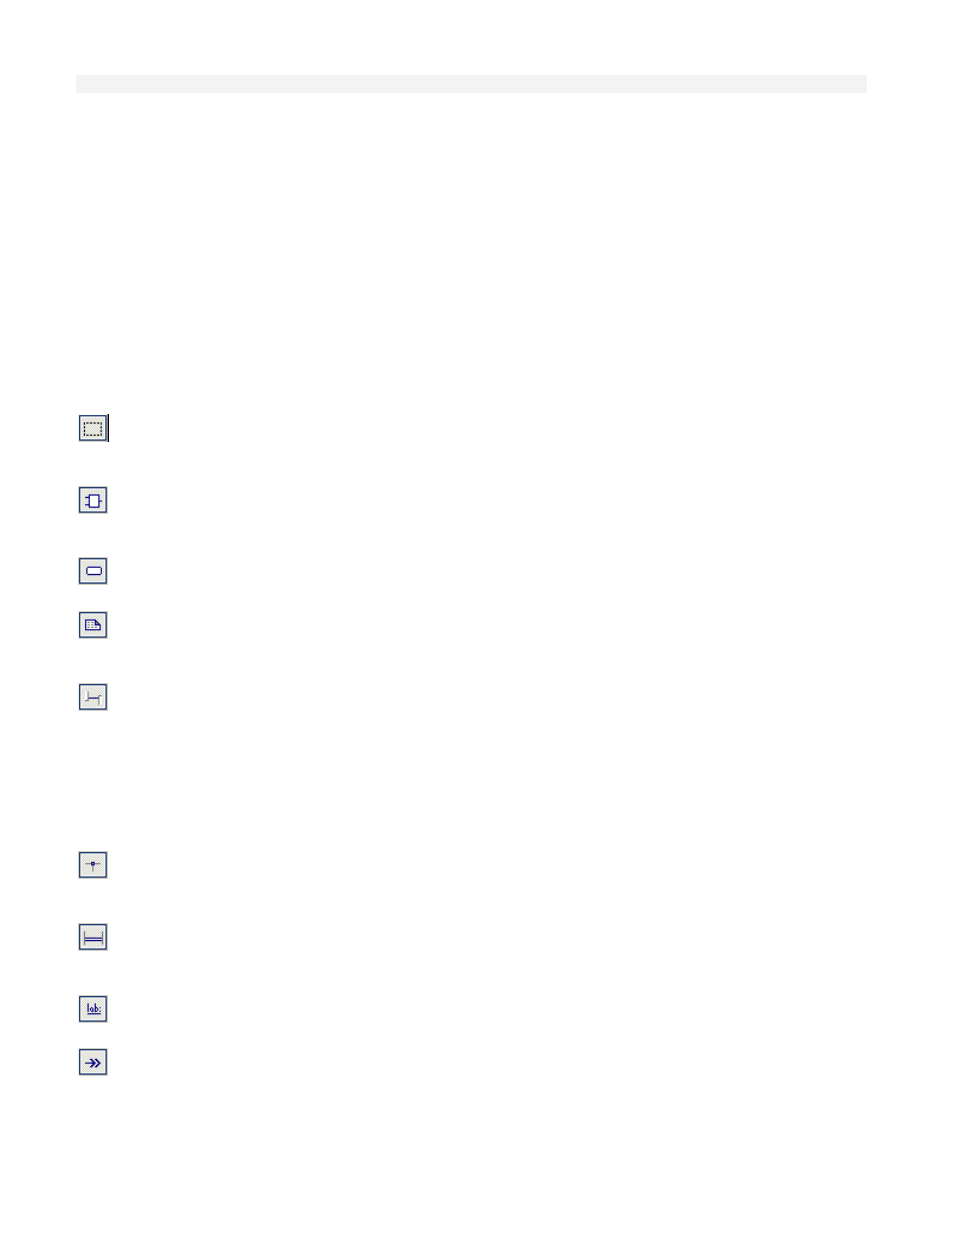 Function Block Diagram Fbd Editor Using The Toolbar Rockwell Automation T6200